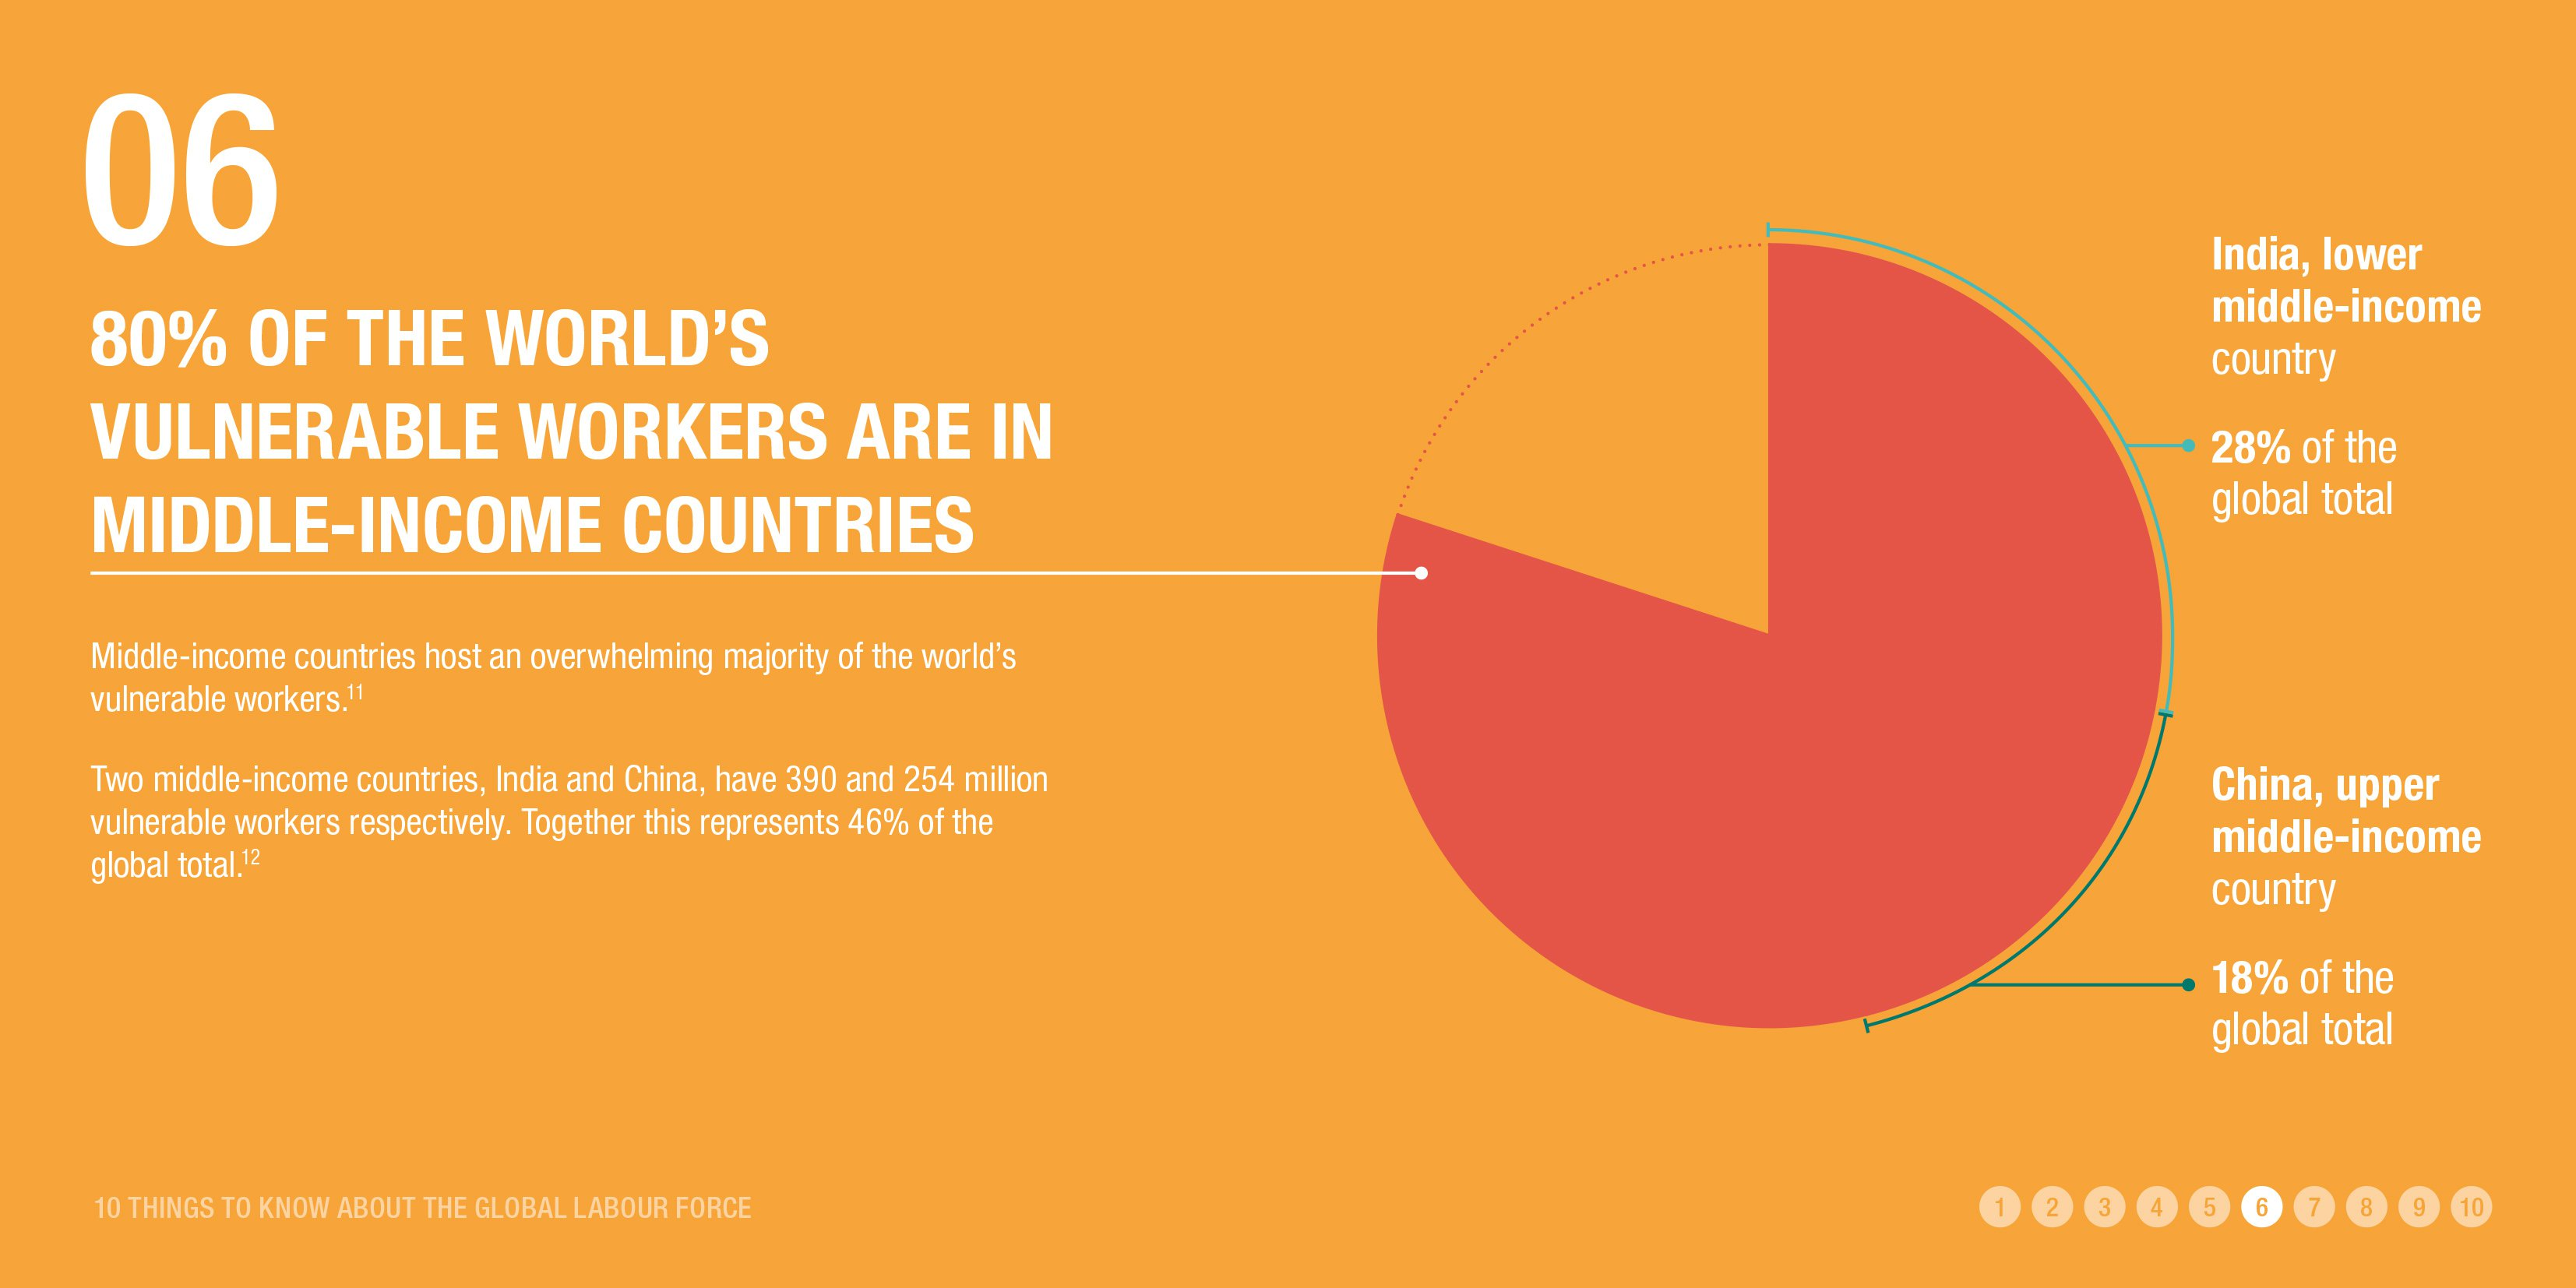 80% of the world's vulnerable workers are in middle-income countries